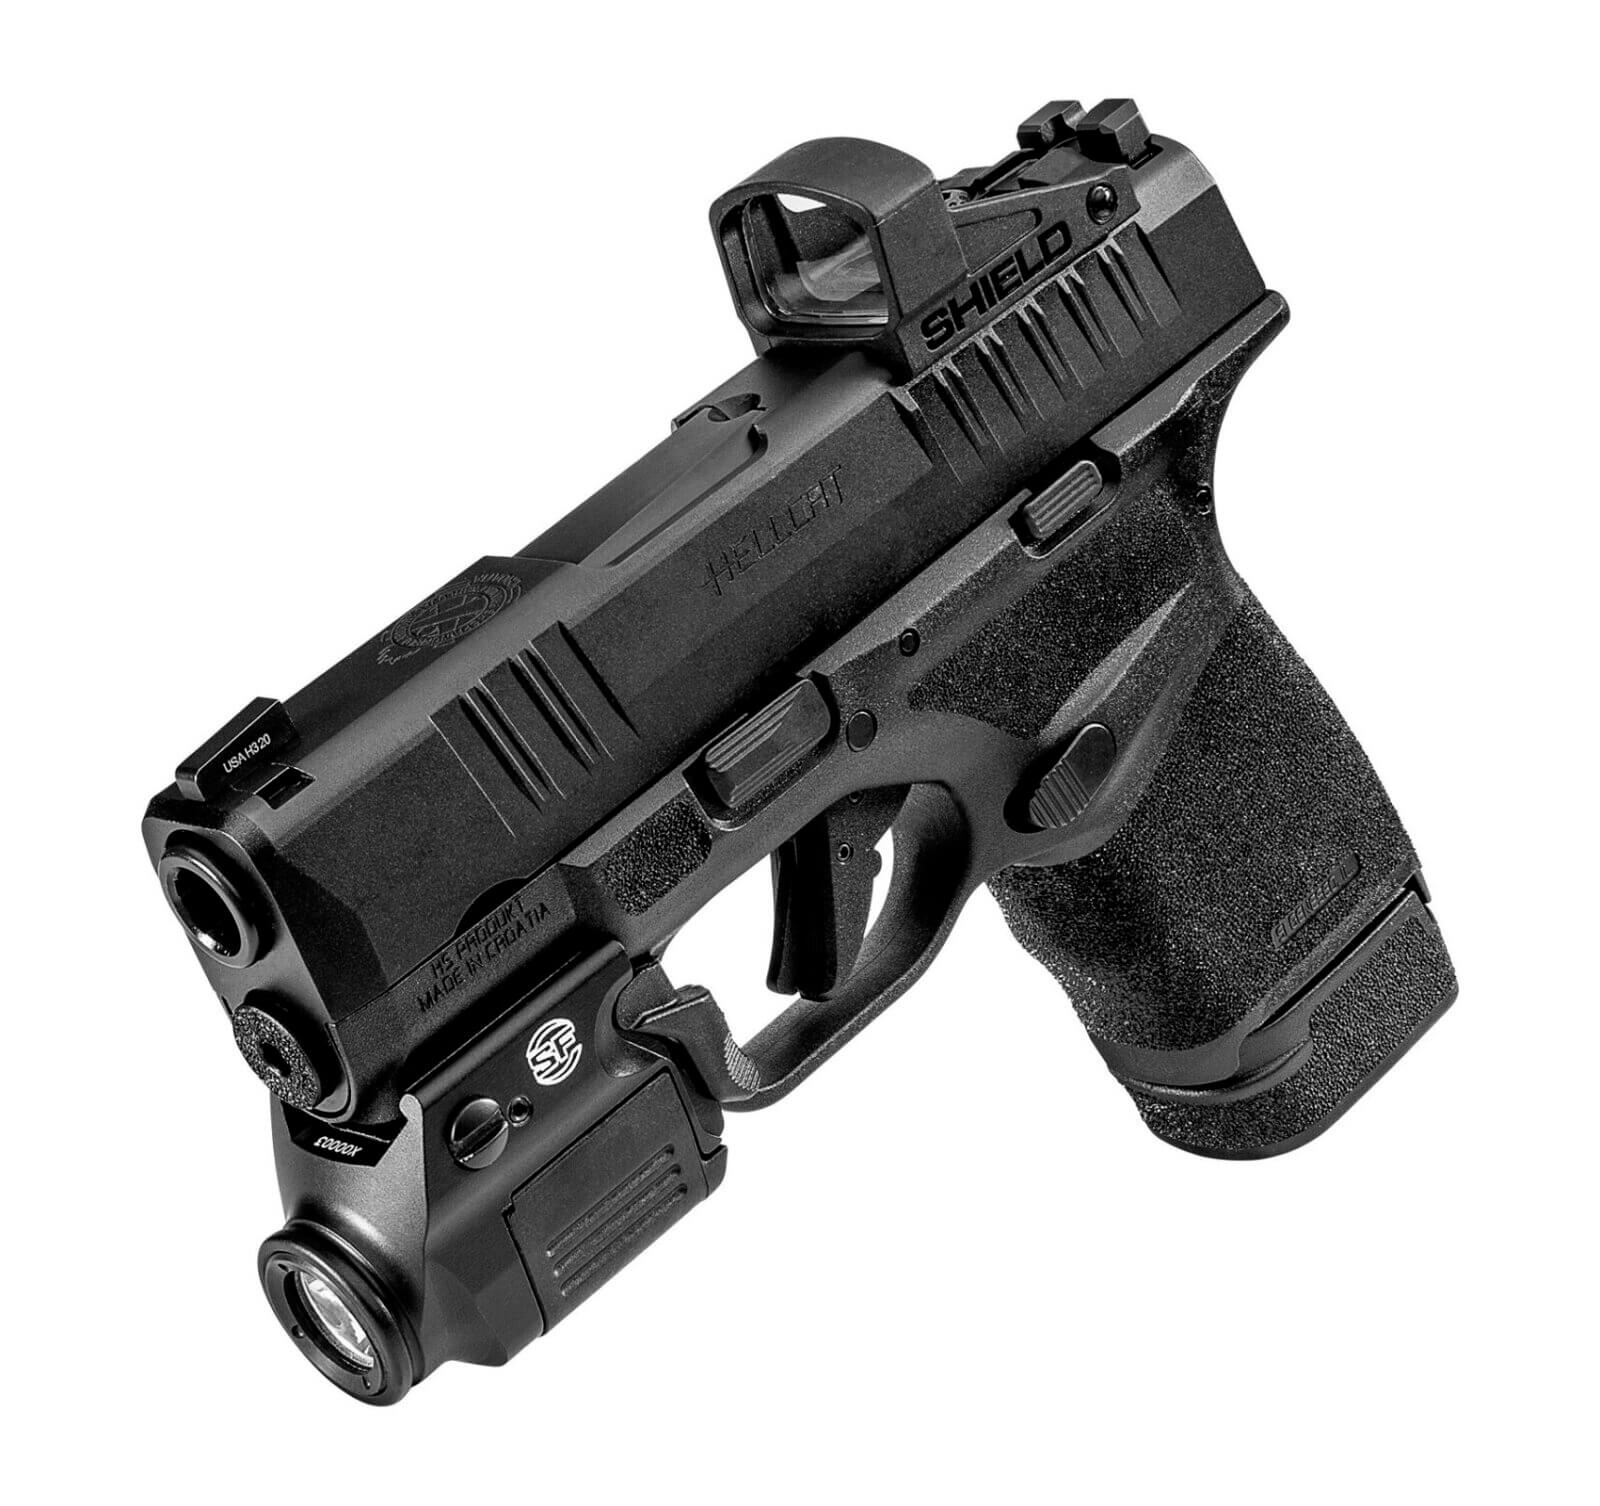 Springfield Hellcat fitted with a Shield red dot and a SureFire XSC flashlight